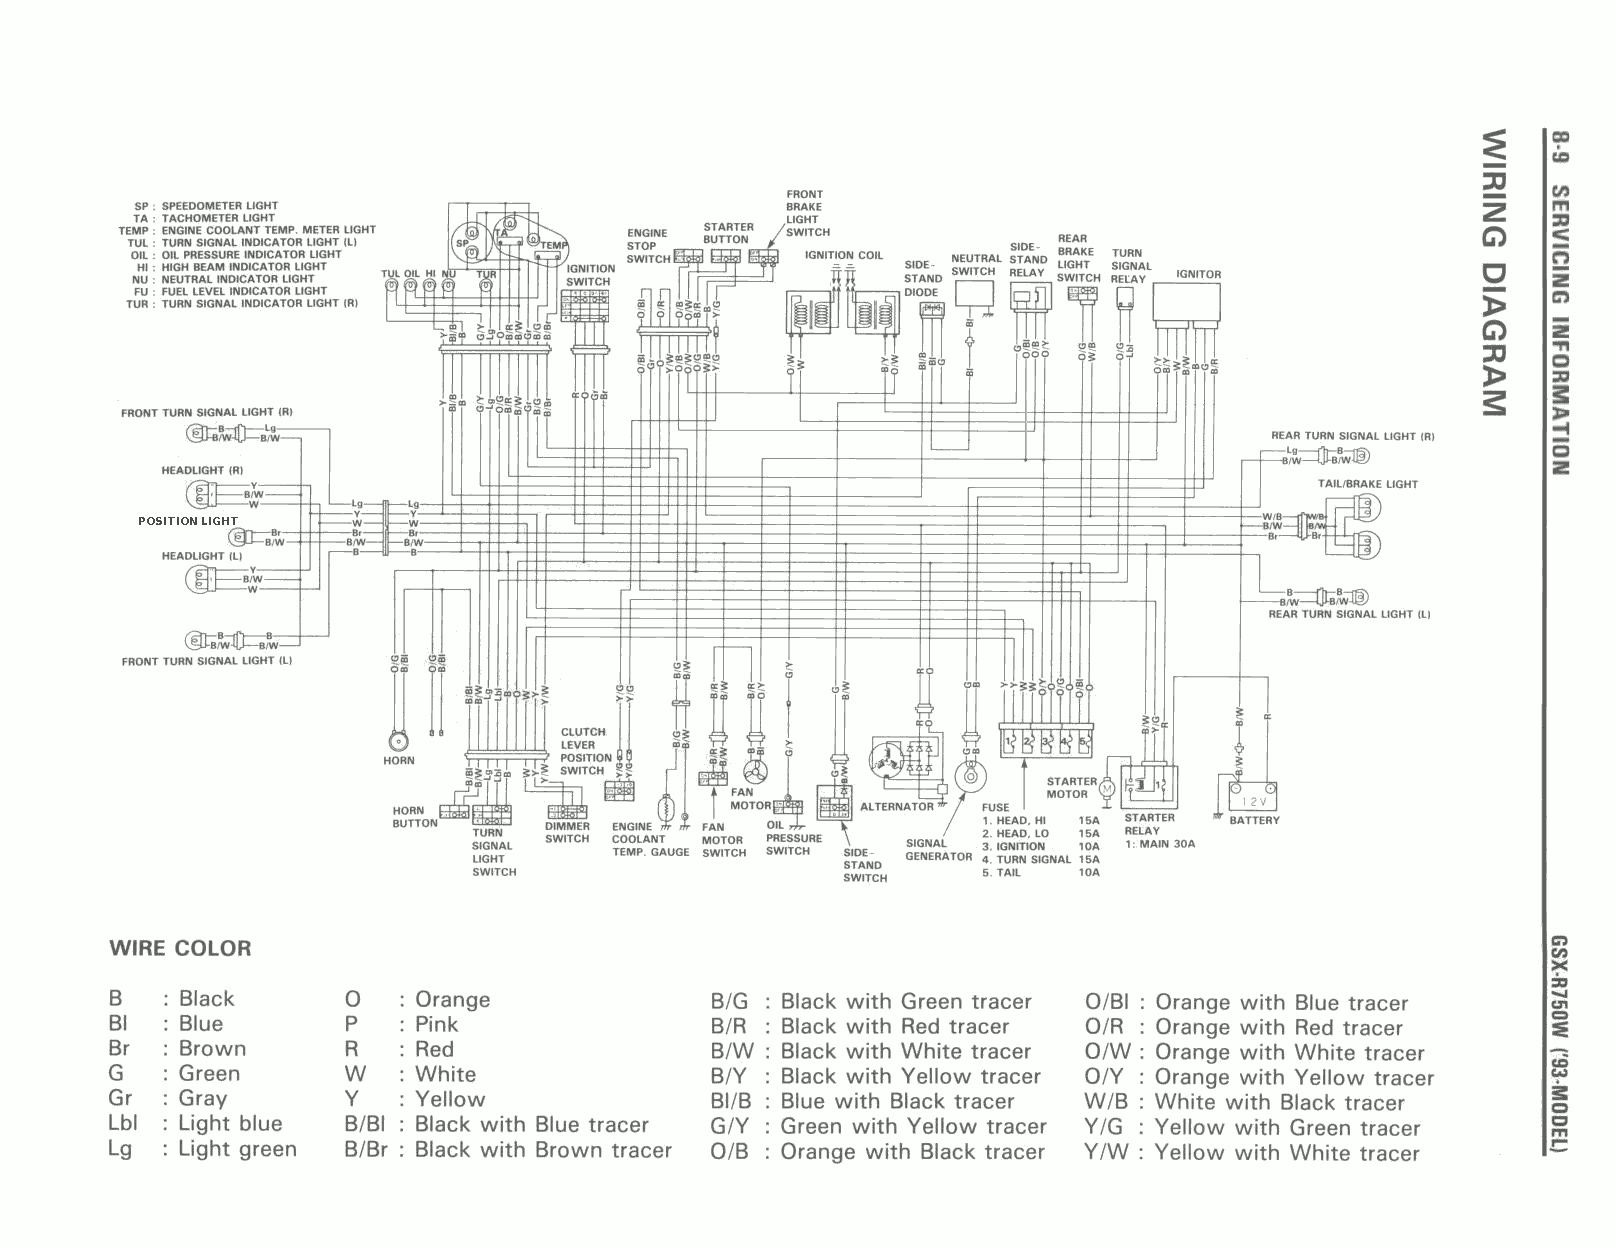 1993 Gsxr 750 Electrical Schematic - Trusted Wiring Diagrams